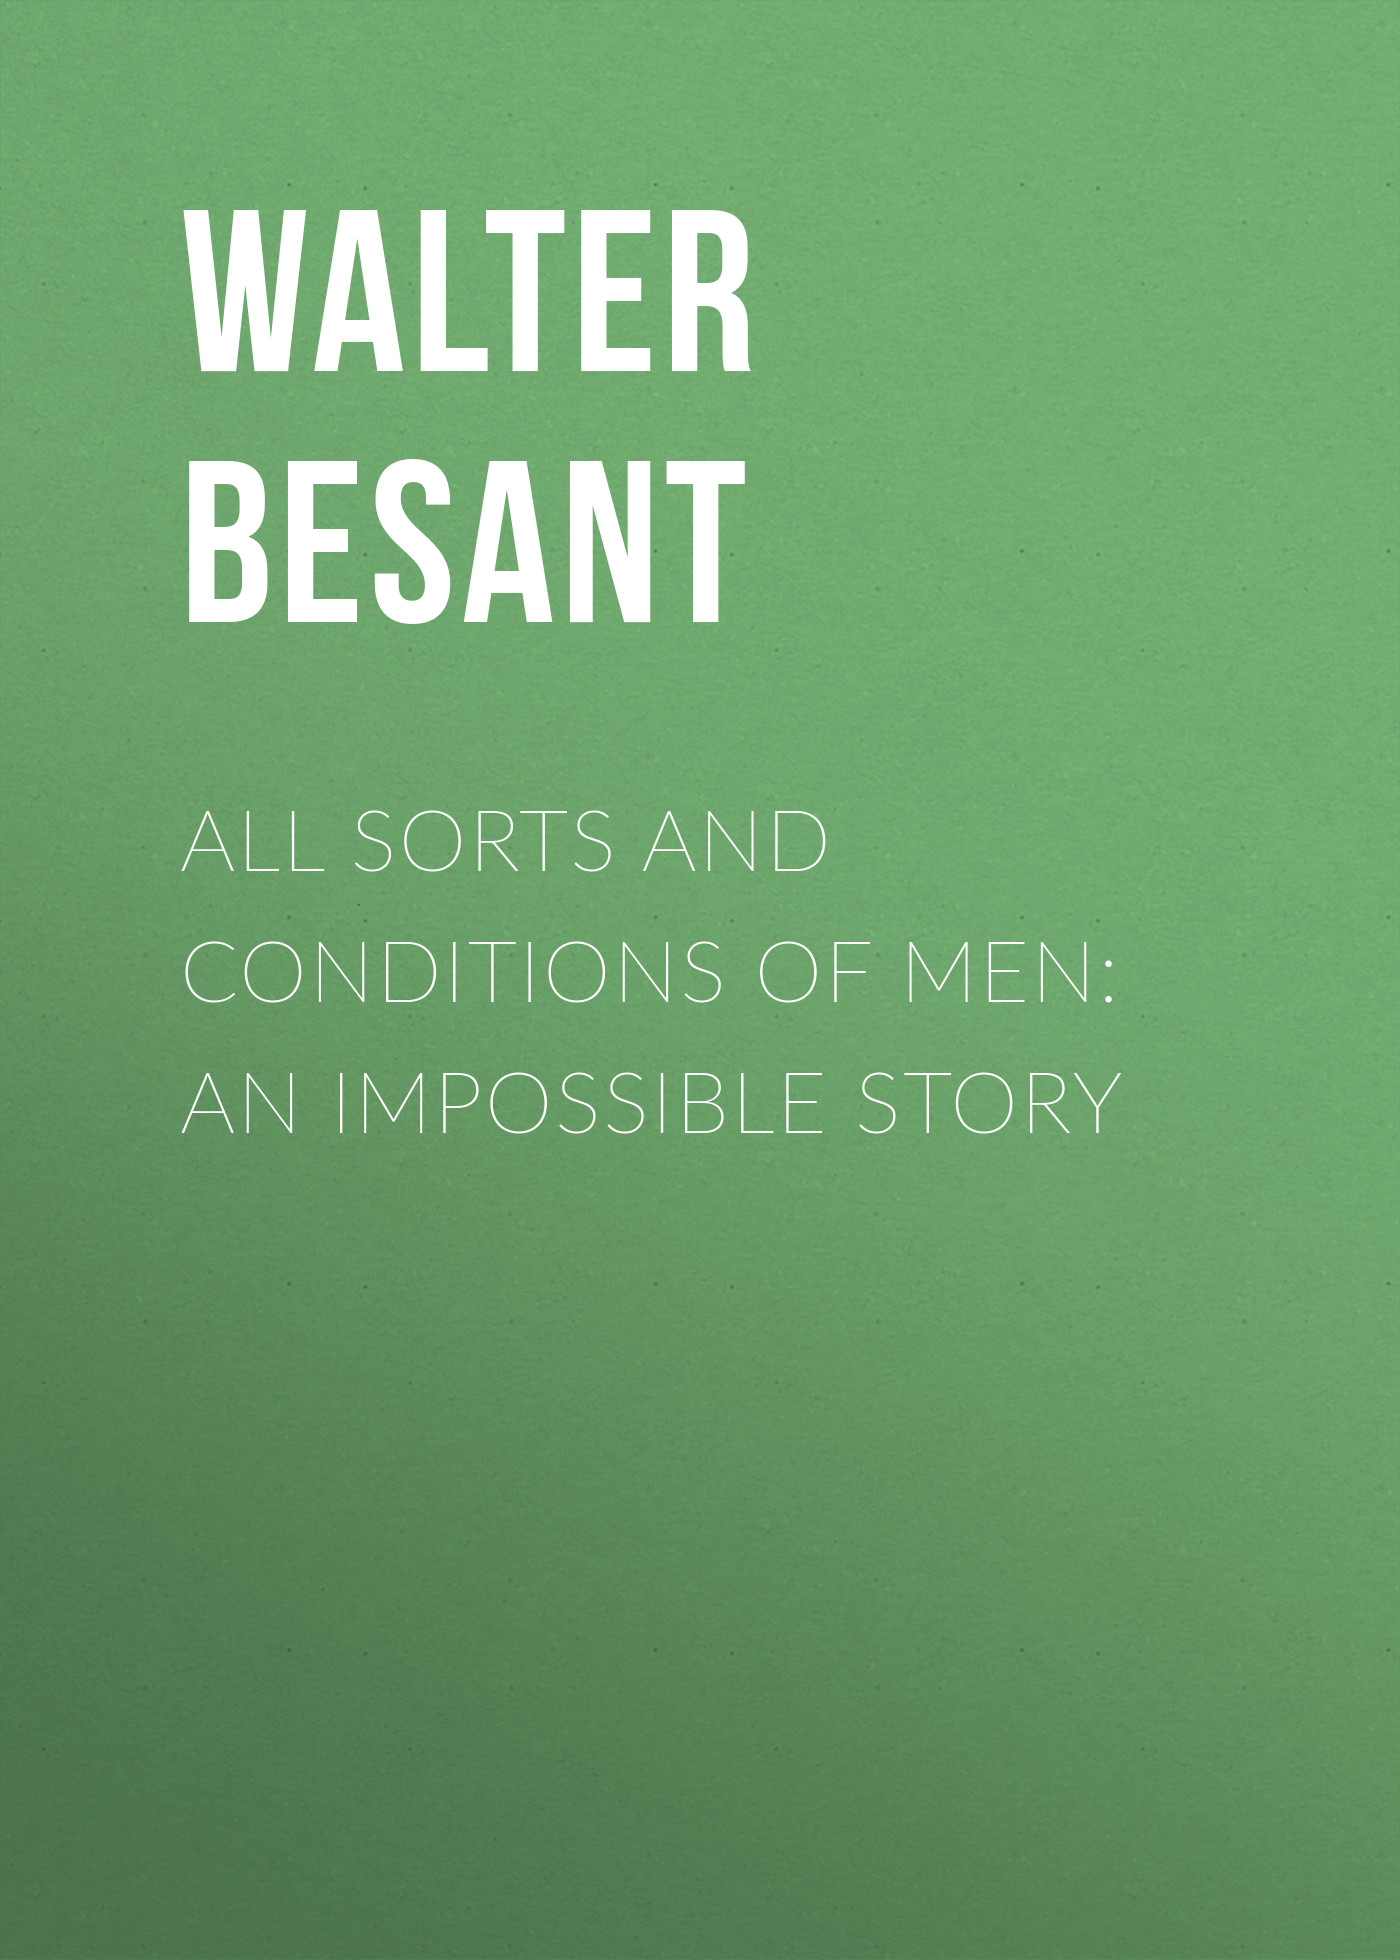 все цены на Walter Besant All Sorts and Conditions of Men: An Impossible Story онлайн